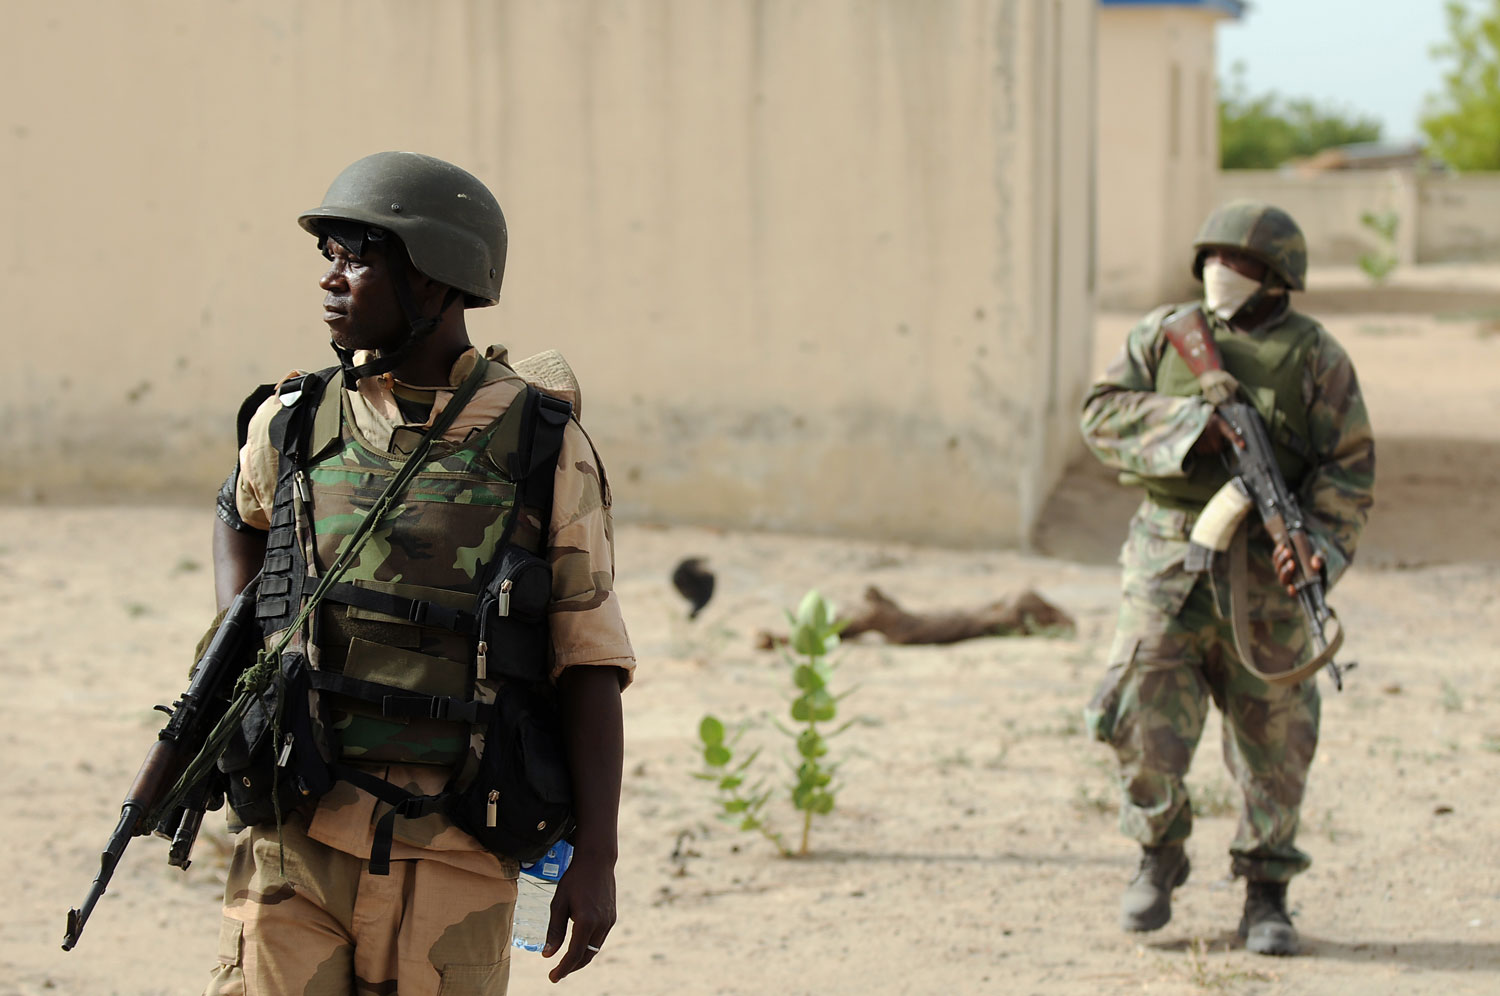 Nigerian soldiers patrol in the north of Borno state close to a Islamist extremist group Boko Haram former camp on June 5, 2013 near Maiduguri.